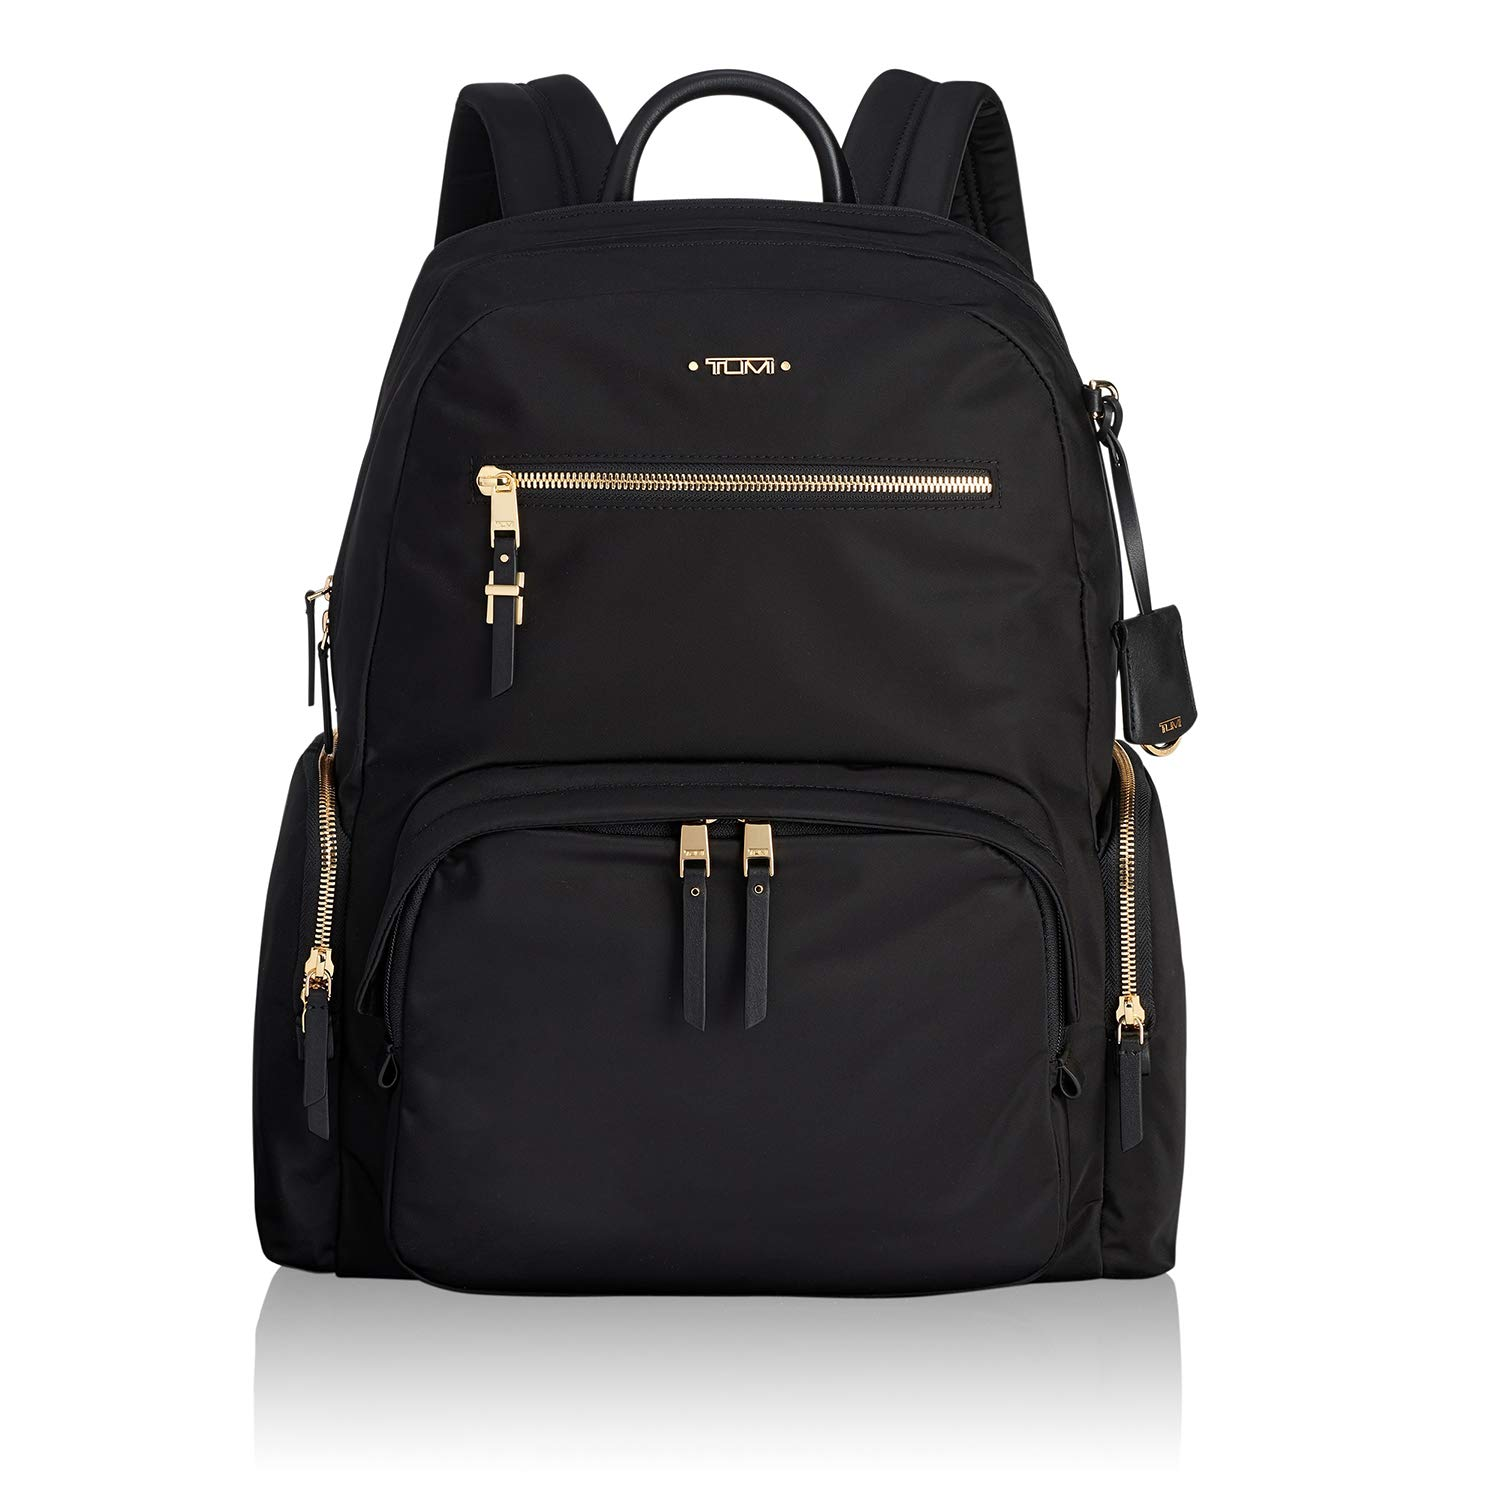 TUMI - Voyageur Carson Laptop Backpack - 15 Inch Computer Bag for Women - Black by TUMI